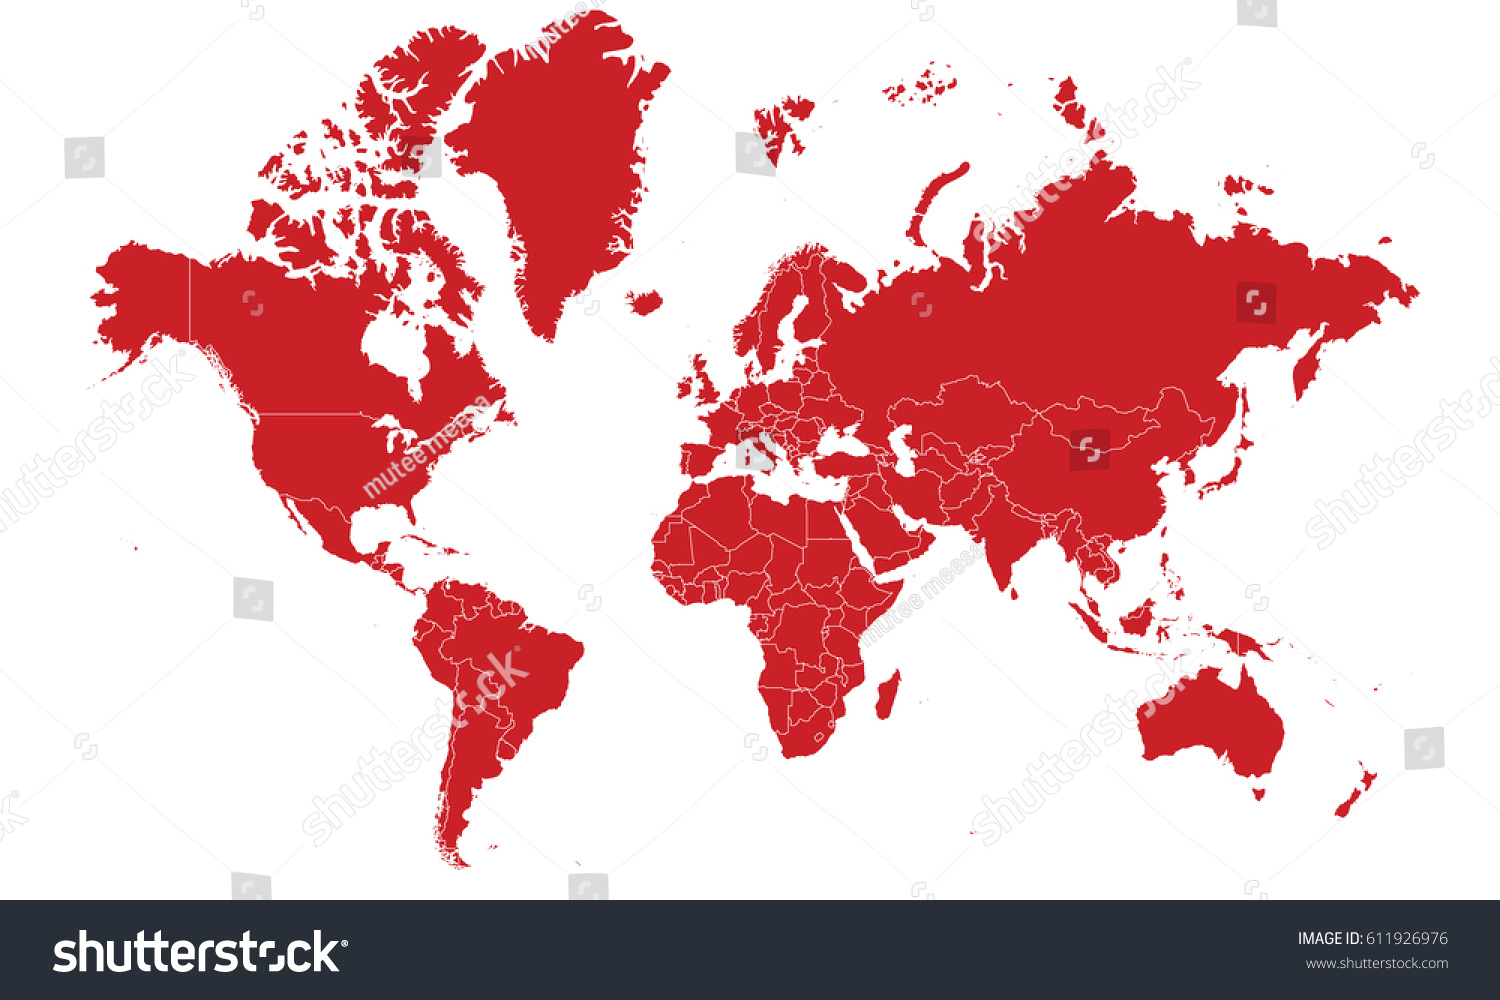 World Map To Color World Map Red Color Stock Vector (Royalty Free) 611926976